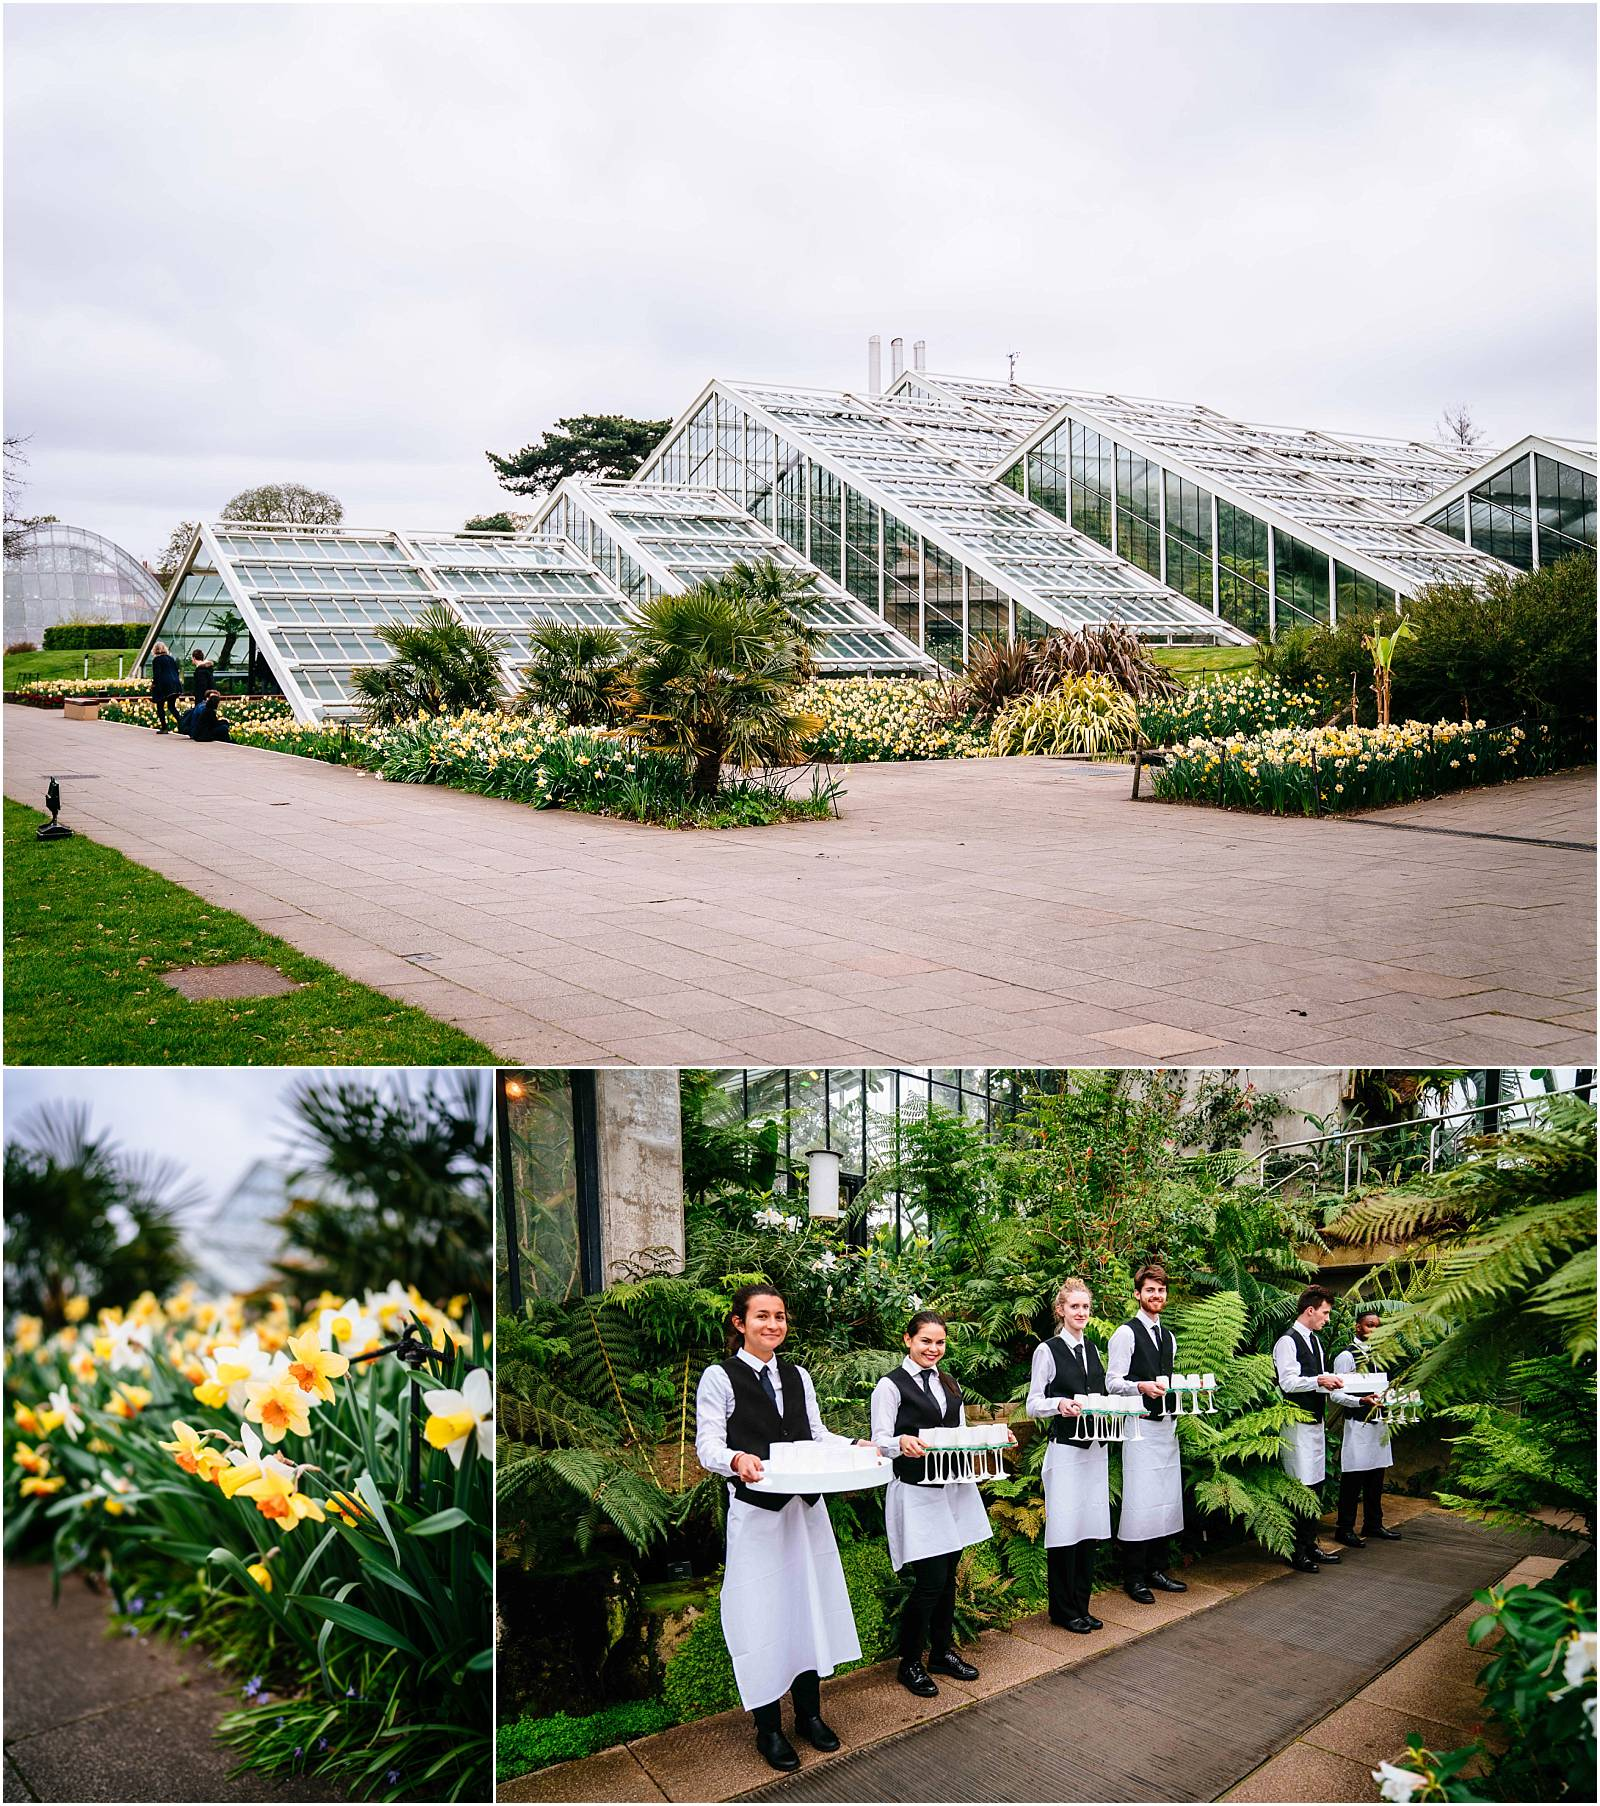 Wedding reception at the princess of wales conservatory